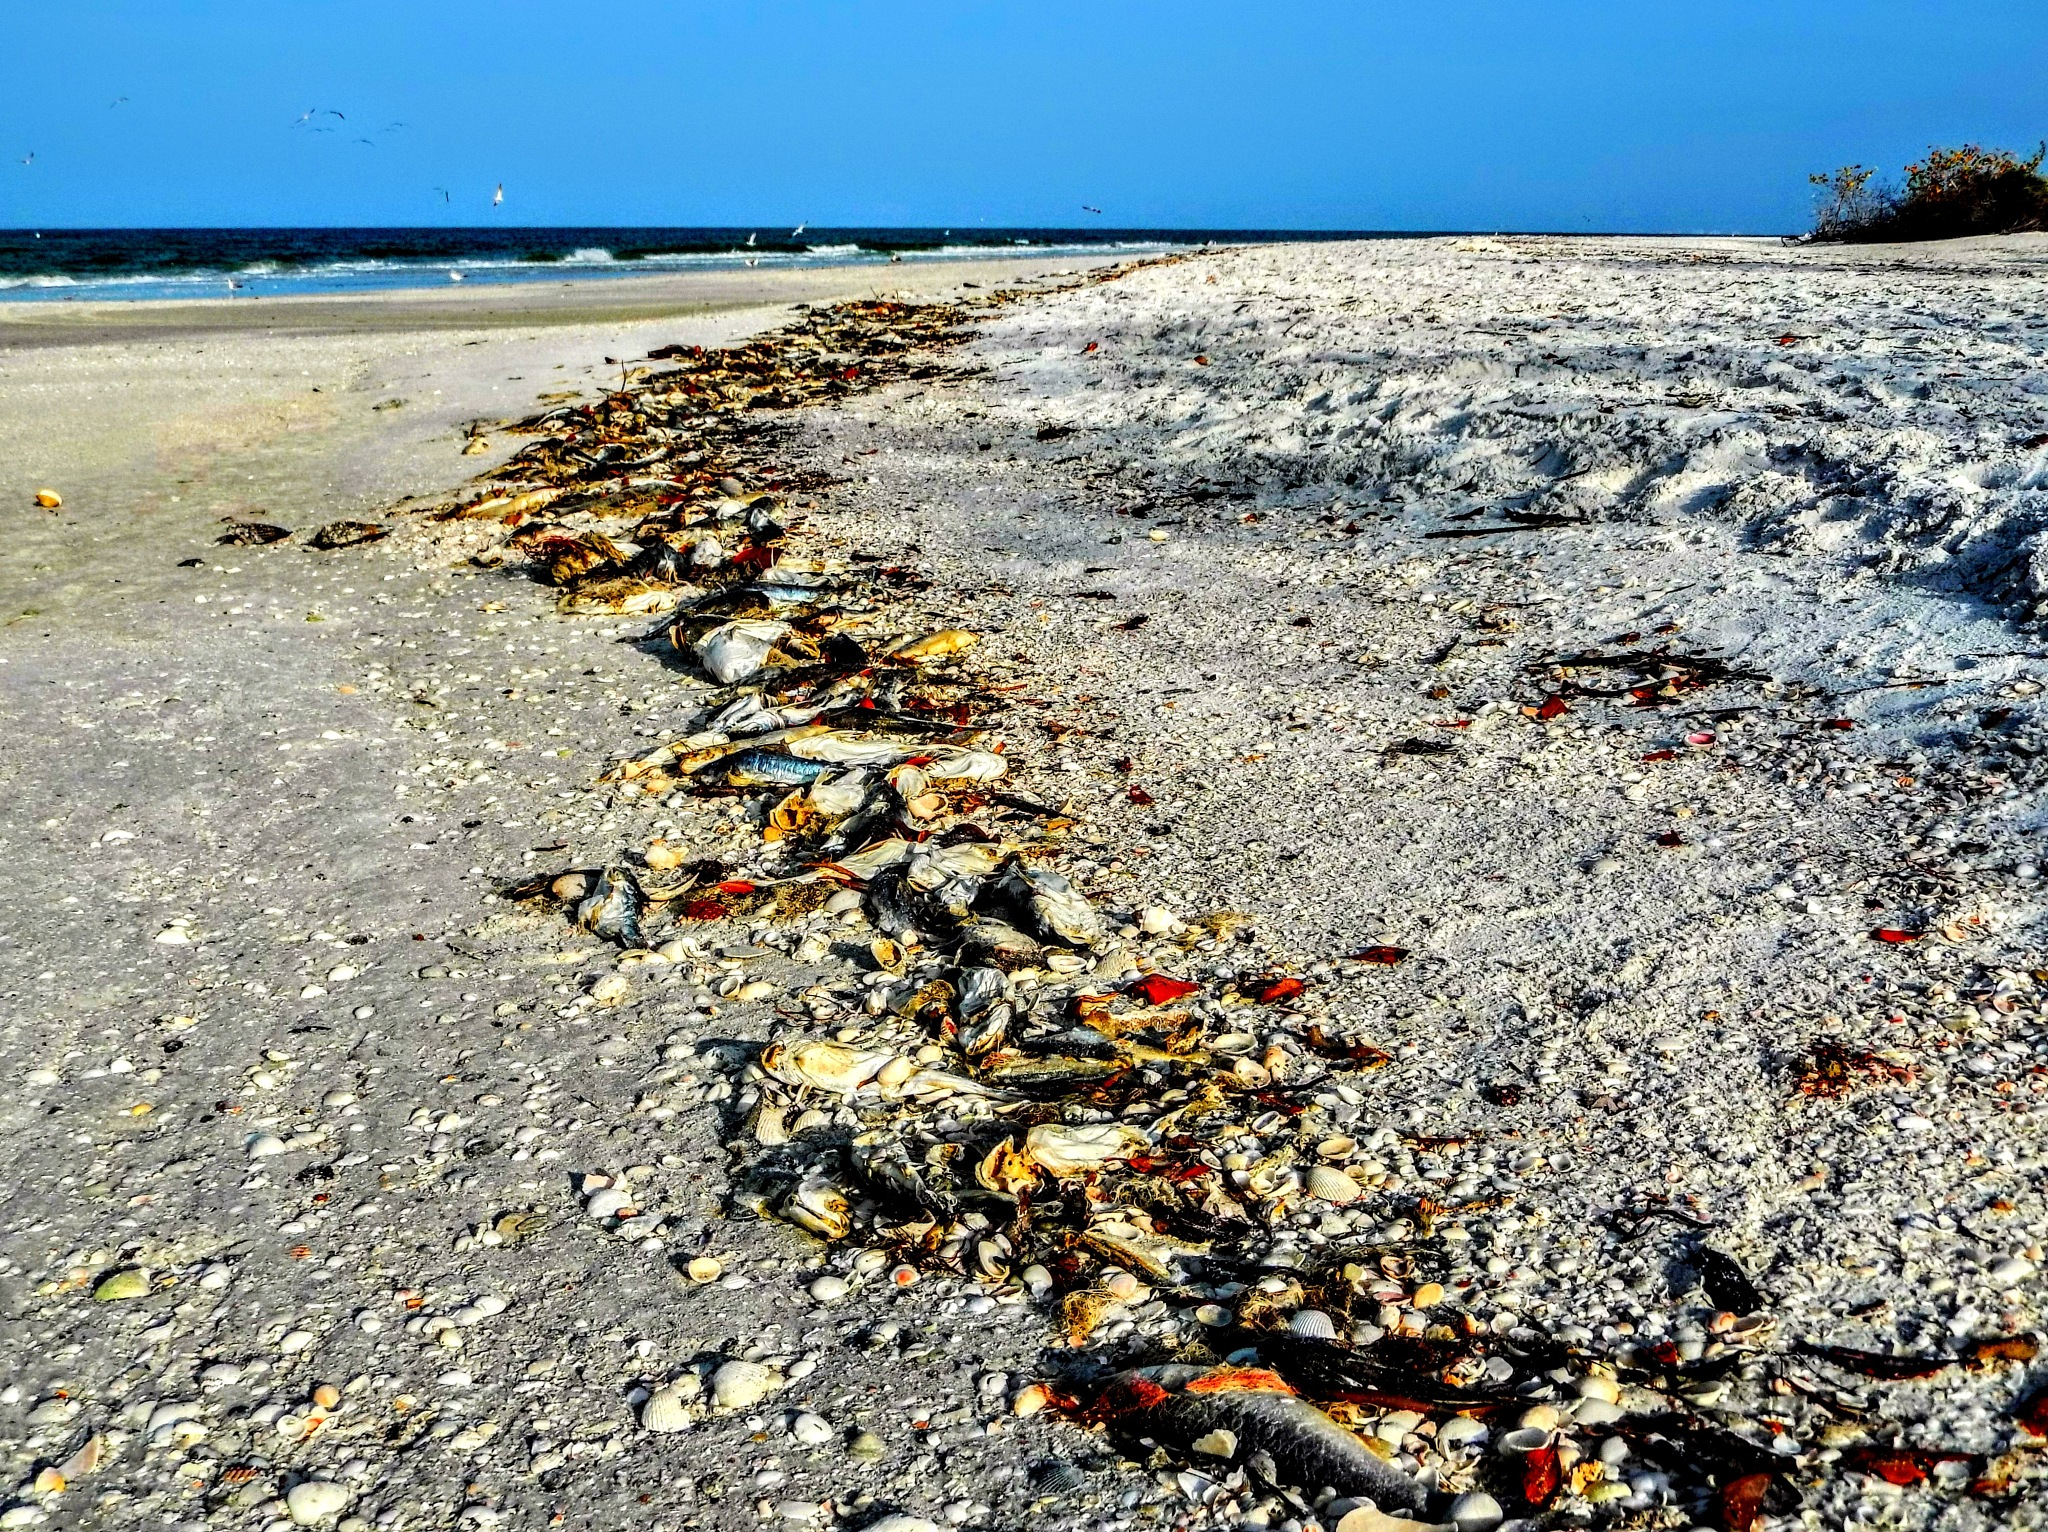 The Red Tide by Todd